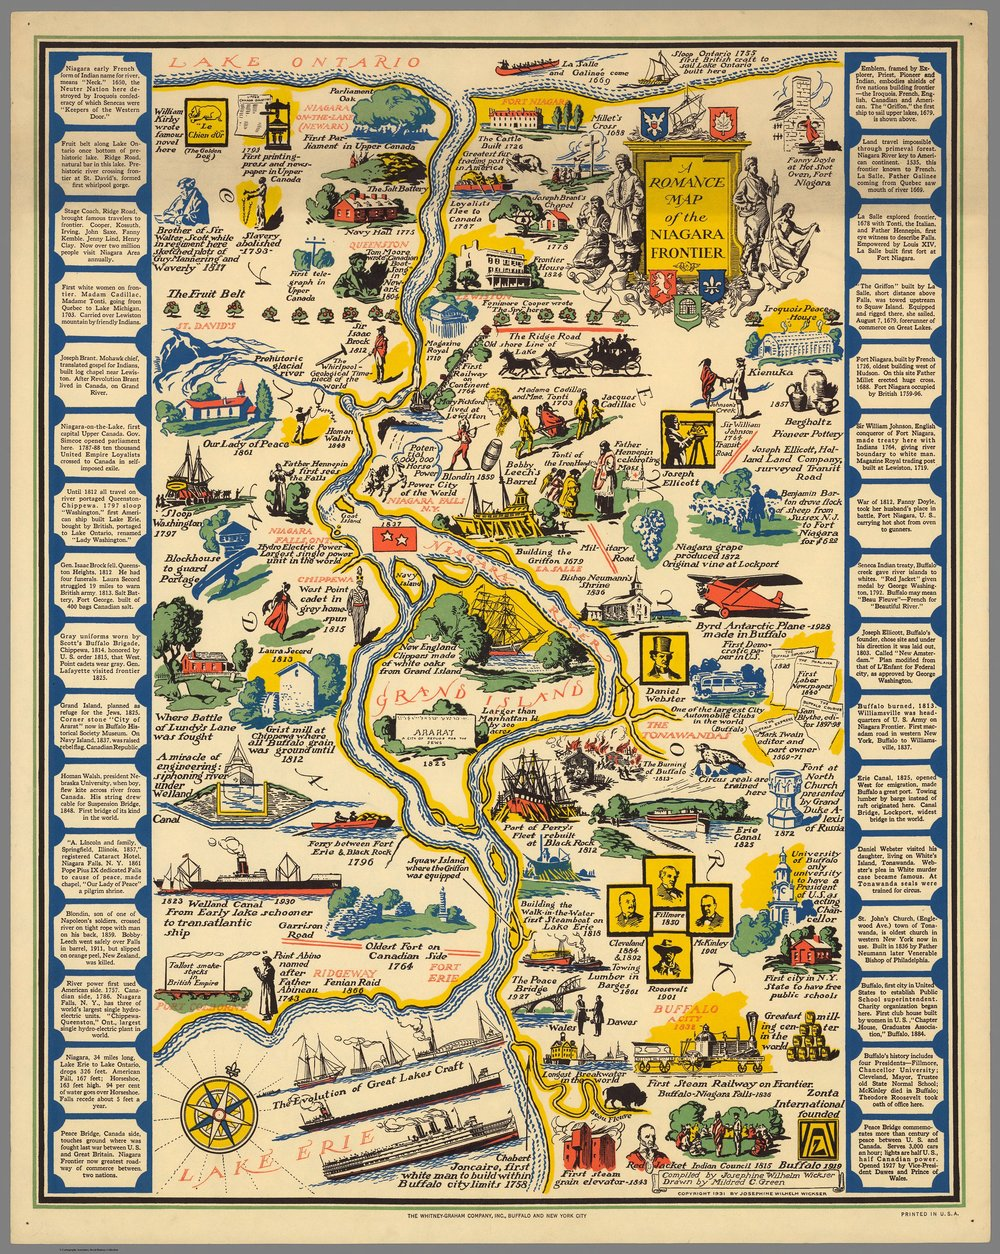 A romance map of the Niagara frontier